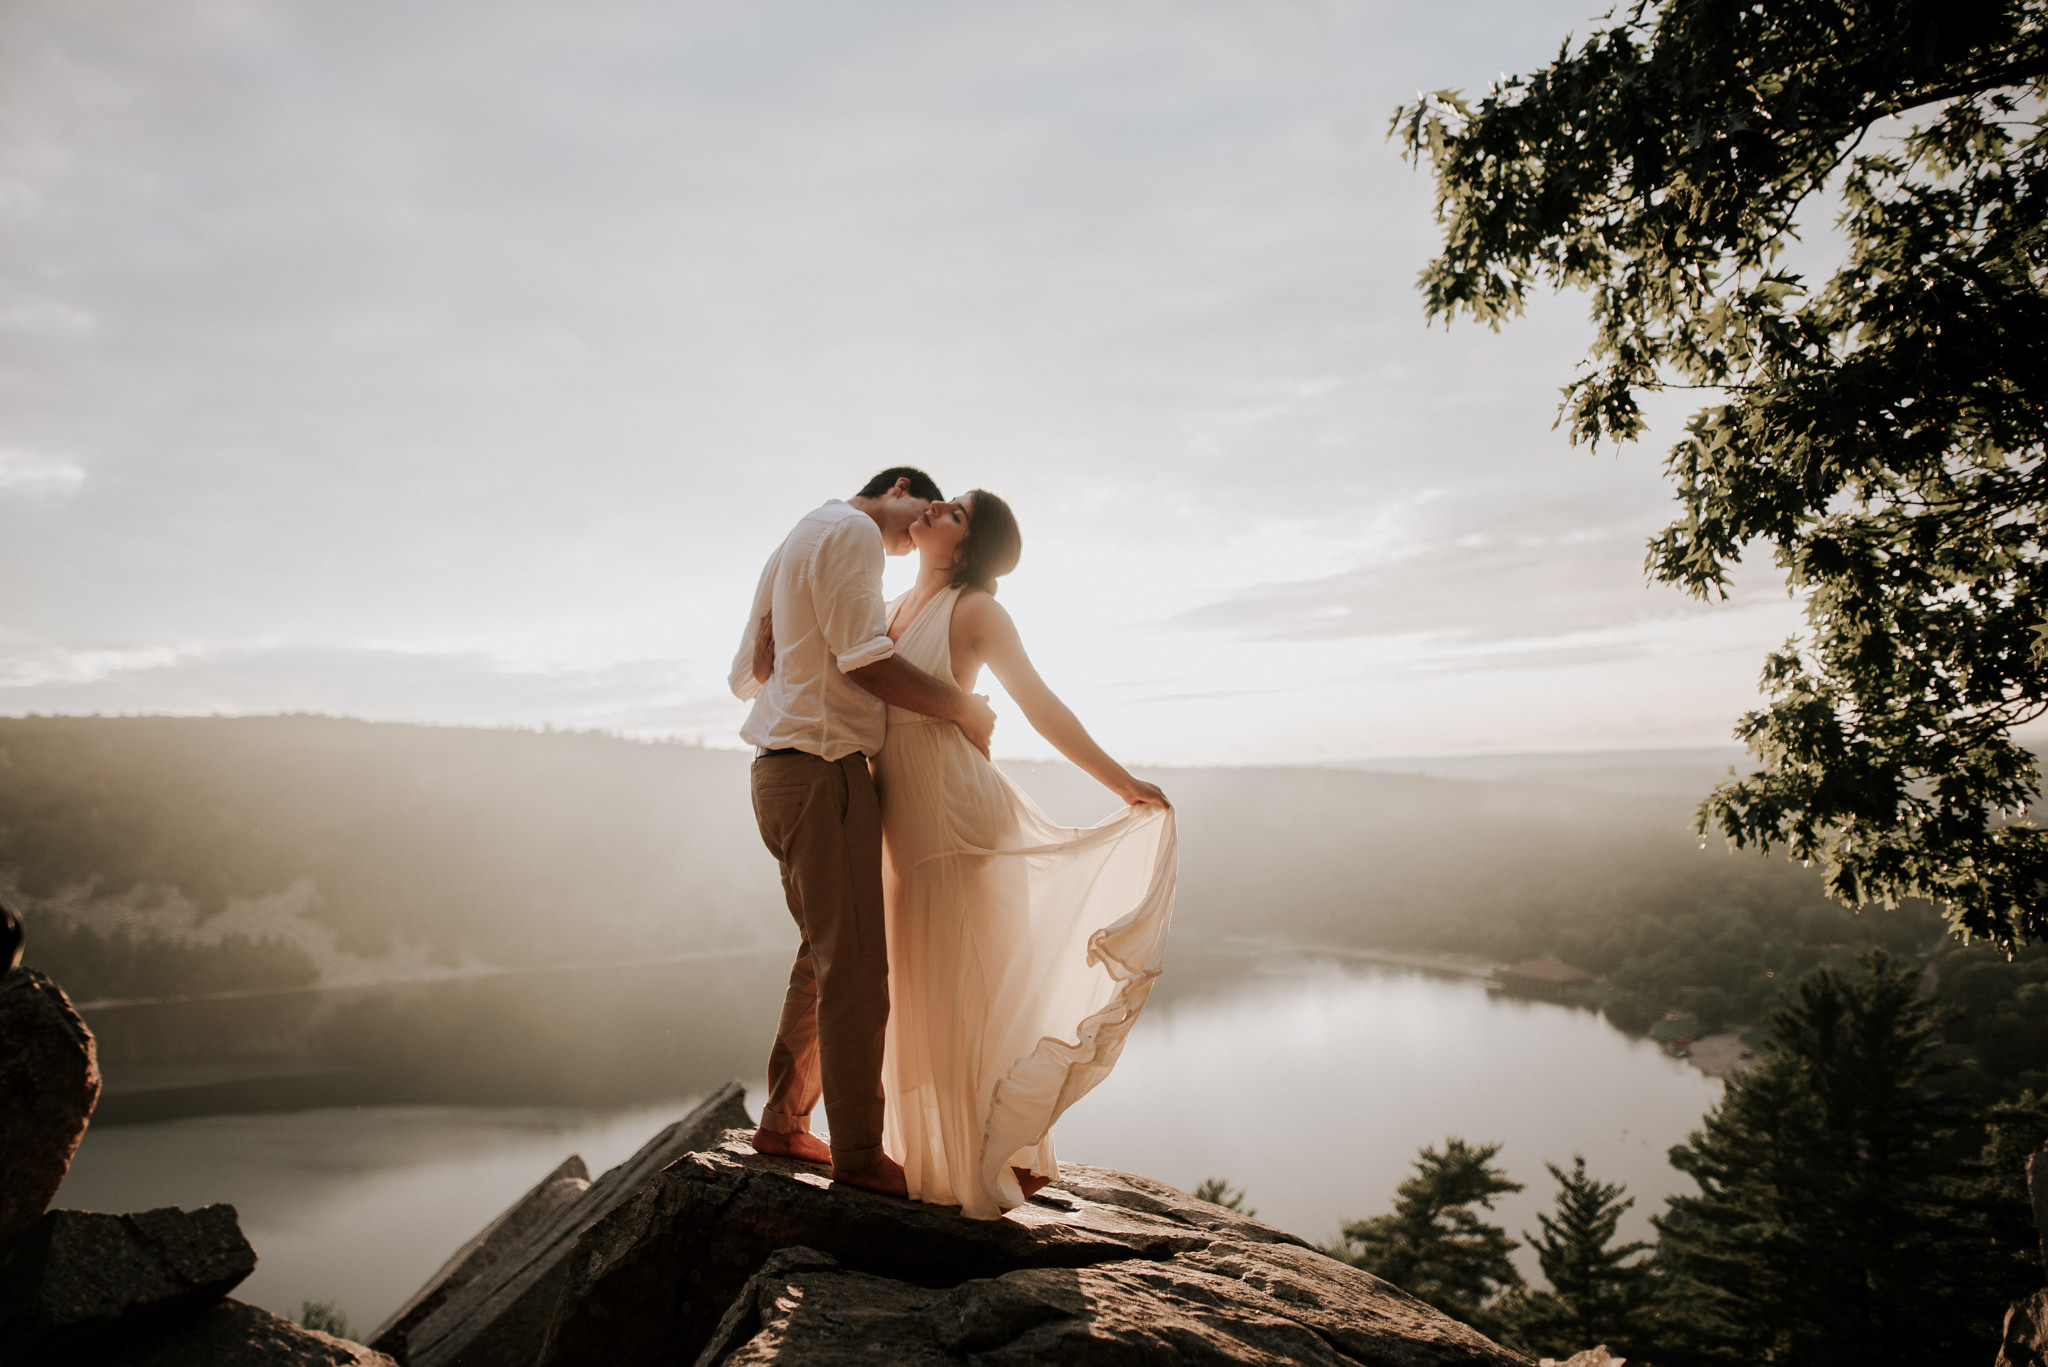 bride-and-groom-standing-on-cliff-overlooking-sunset-with-dress-flipping-while-embracing